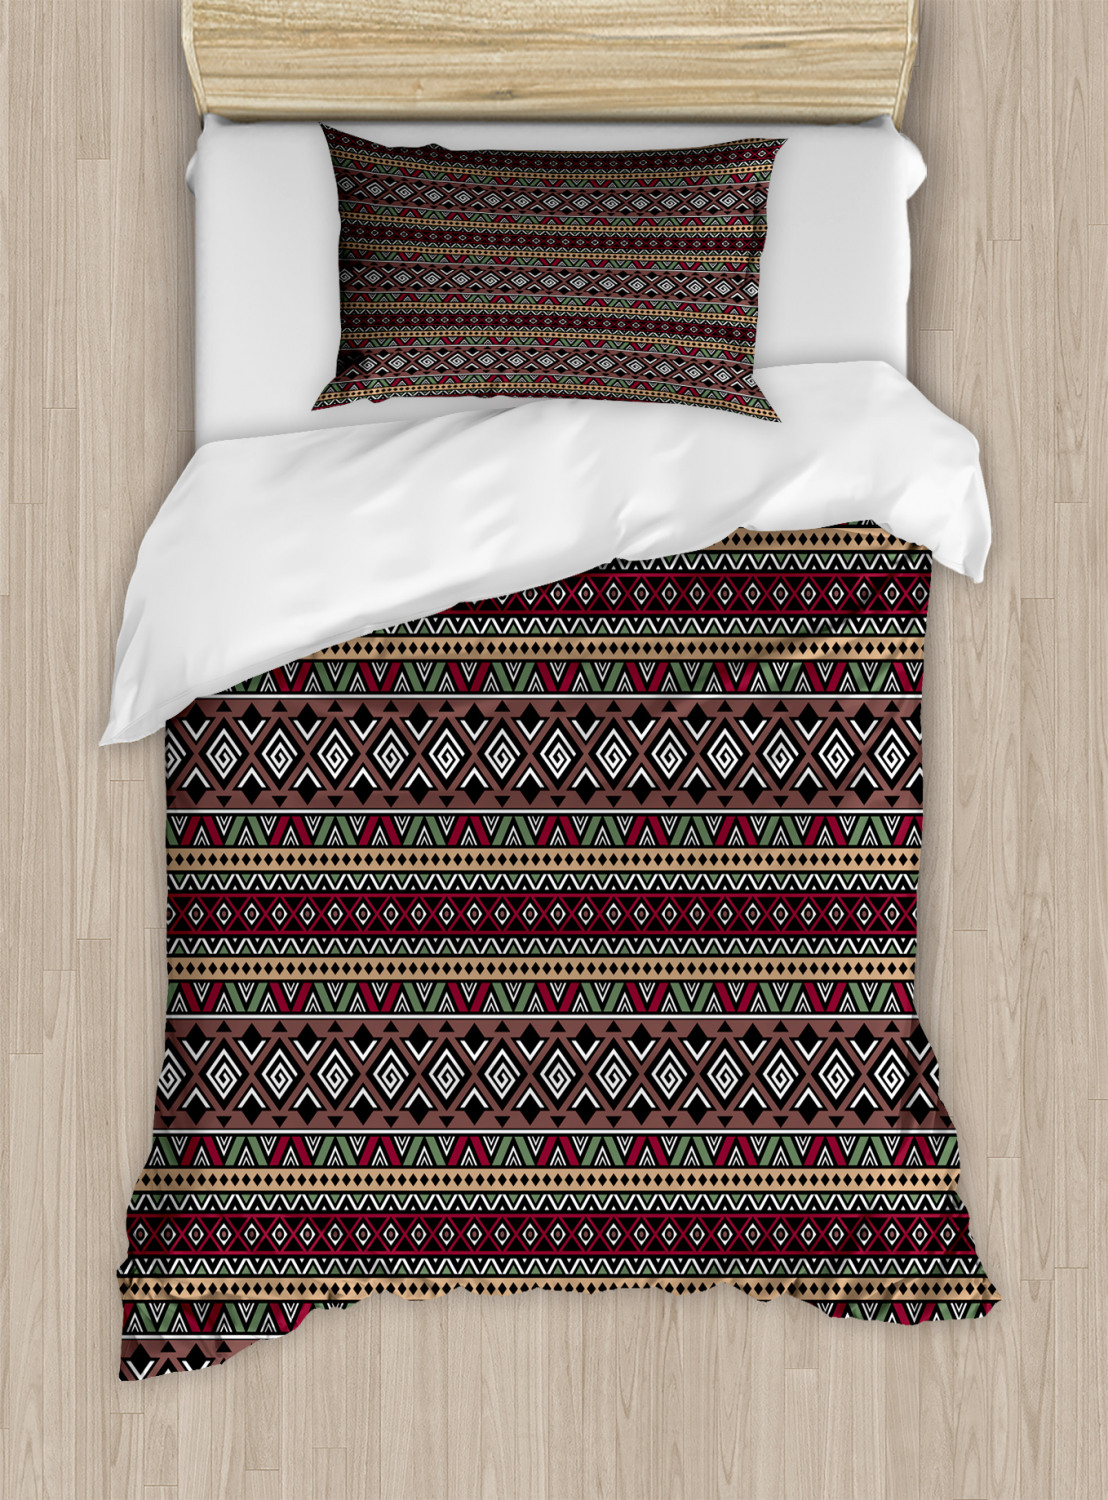 Timeless-Oriental-Duvet-Cover-Set-Twin-Queen-King-Sizes-with-Pillow-Shams thumbnail 55